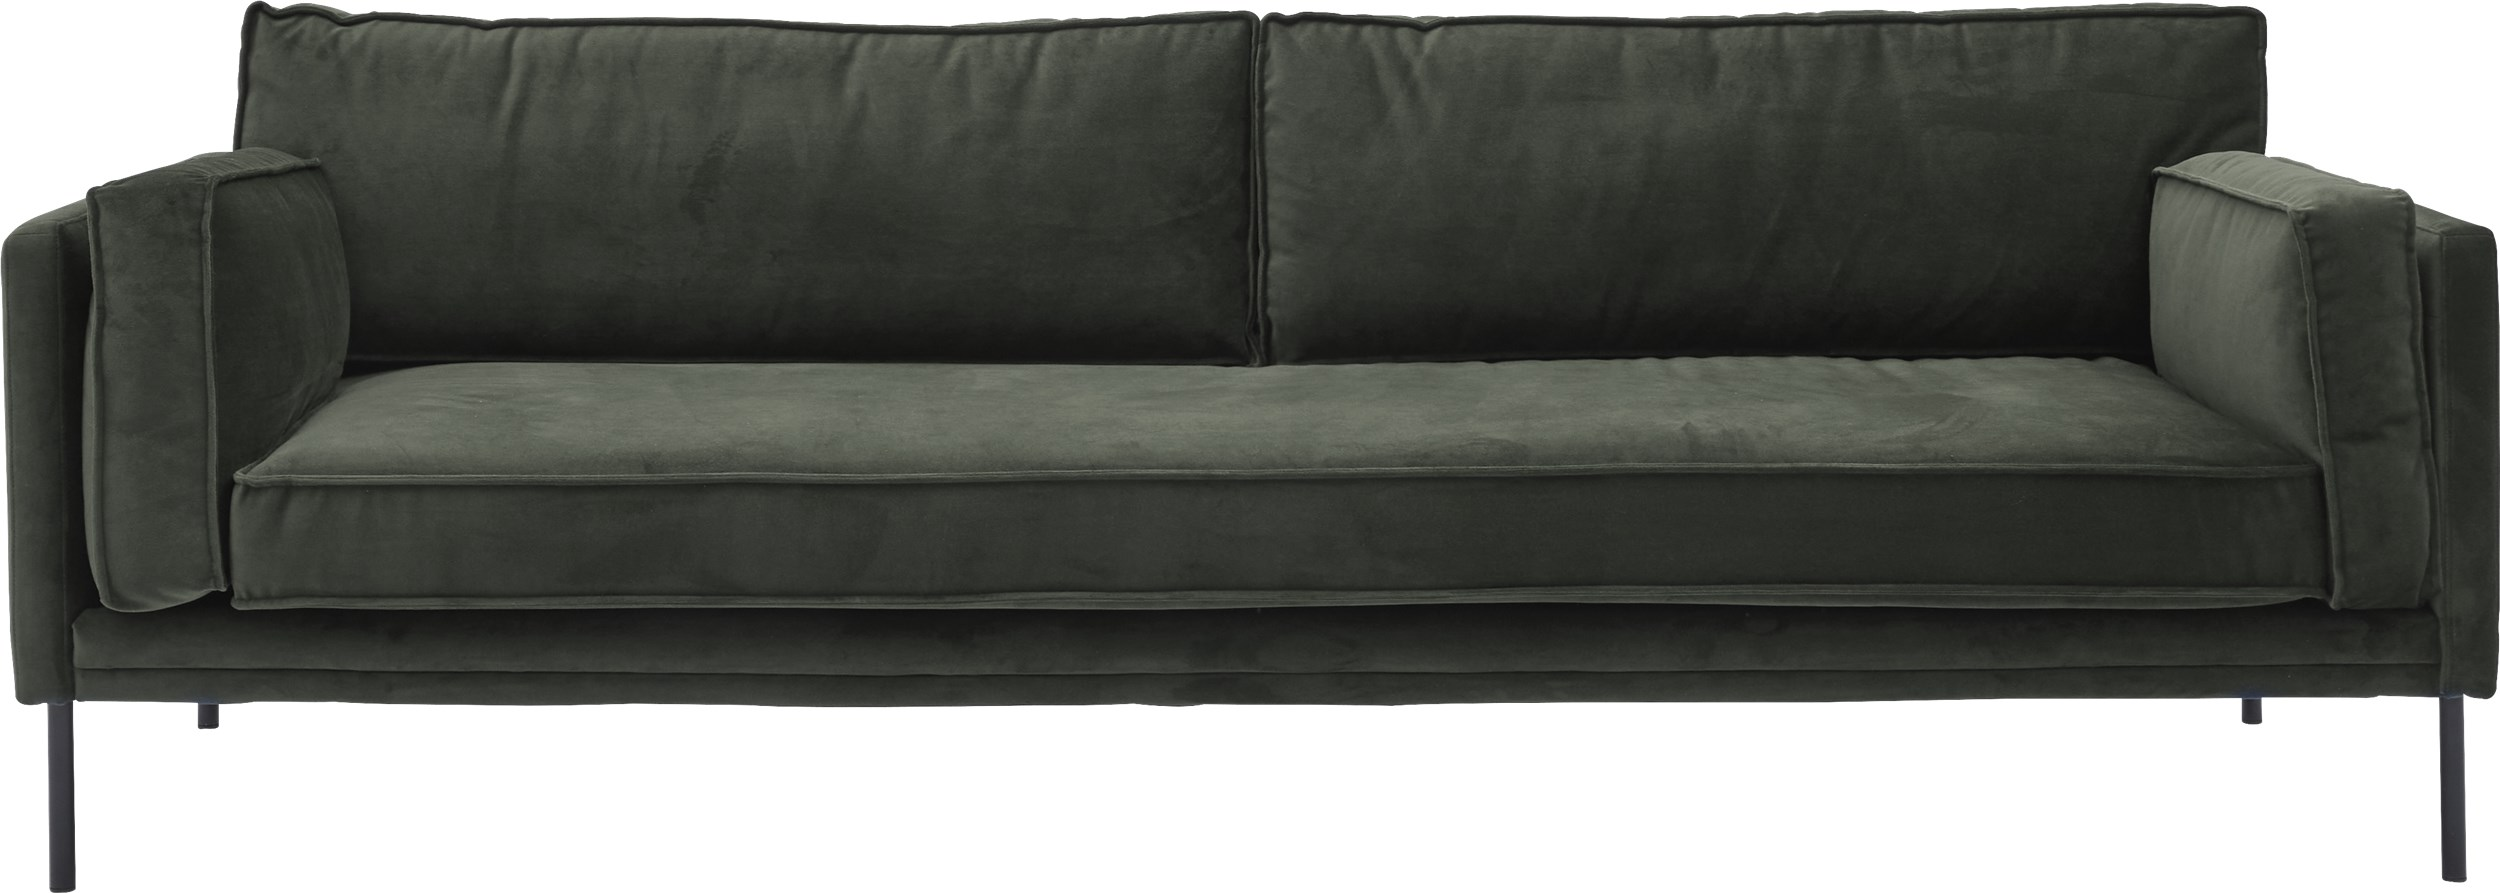 Keep 3 pers Sofa - Toro 6847 Emerald stof og ben i sort metal